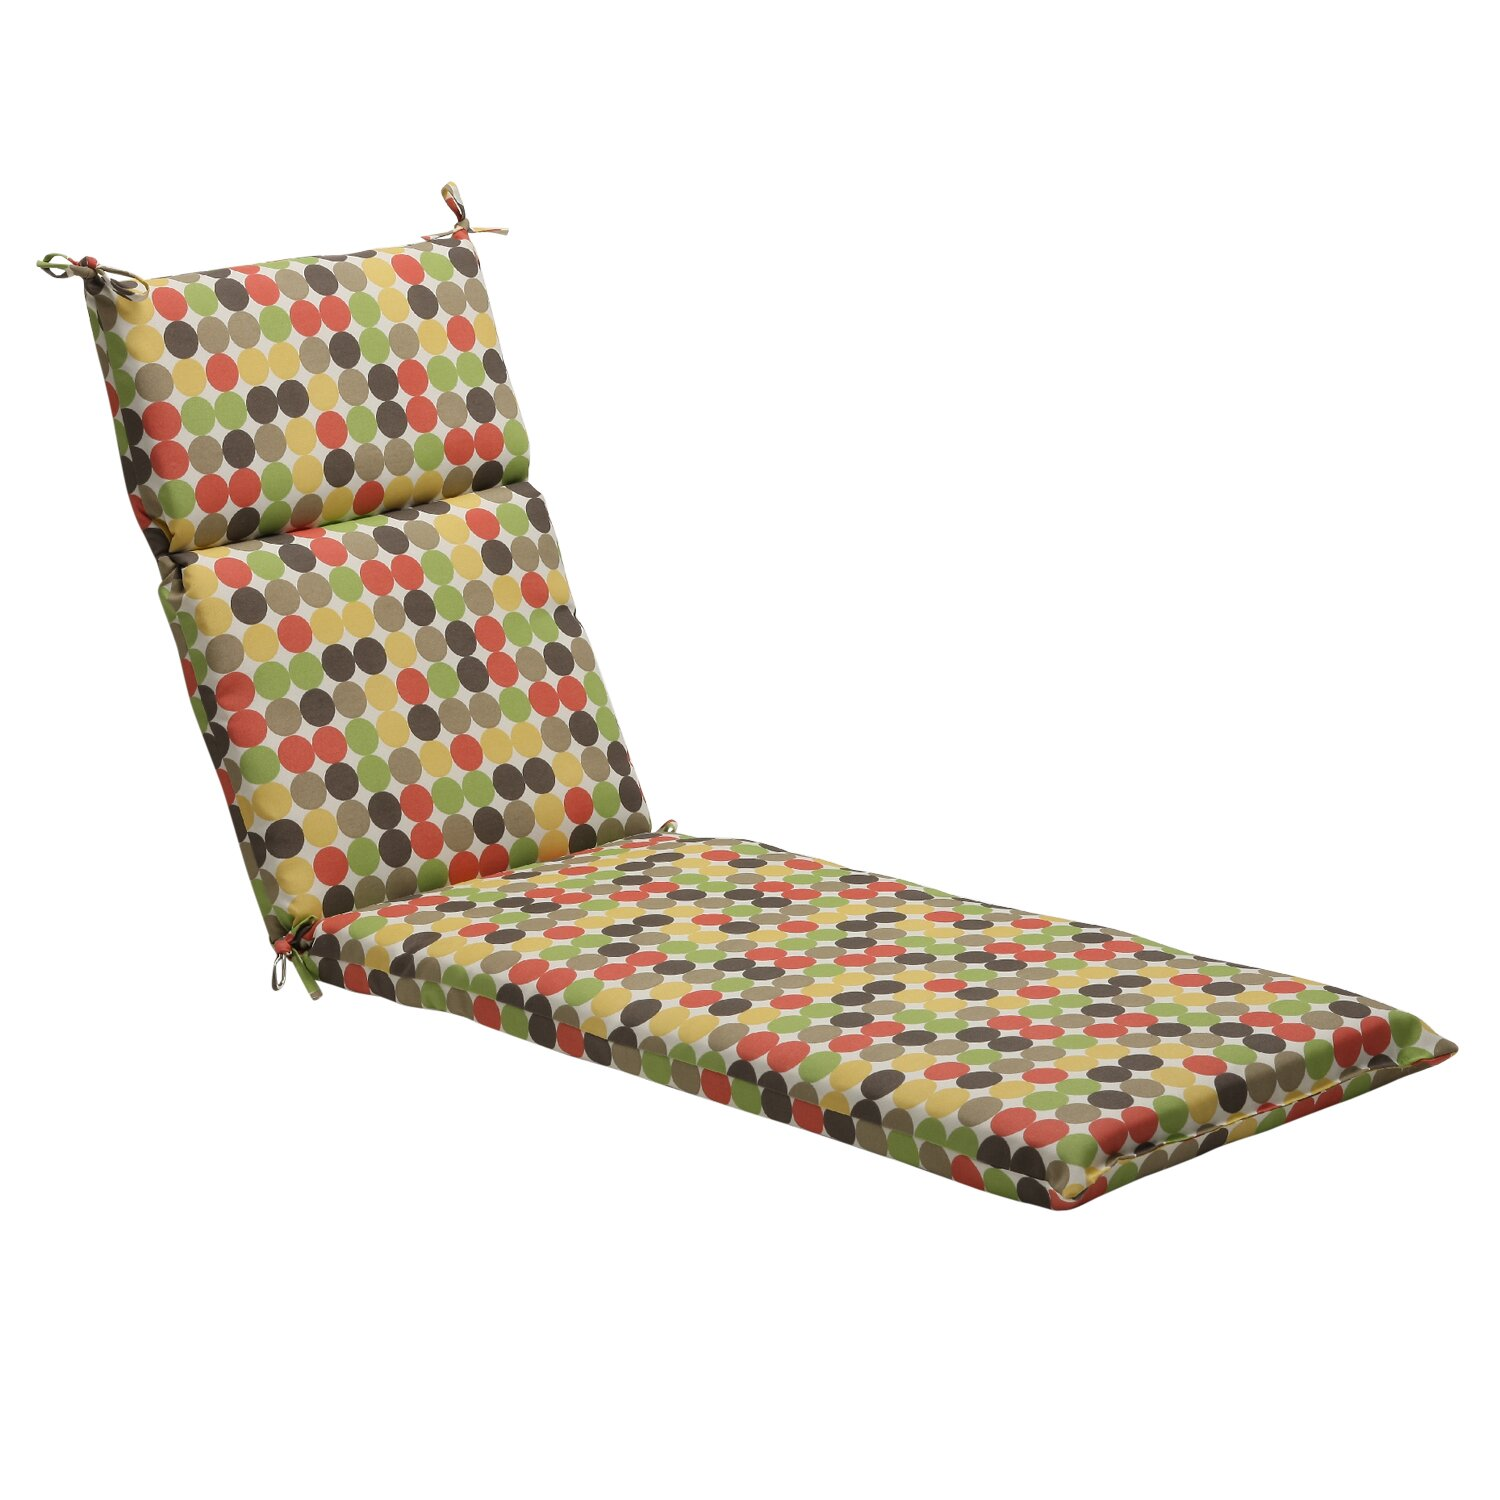 Pillow Perfect Polka Dots Outdoor Chaise Lounge Cushion